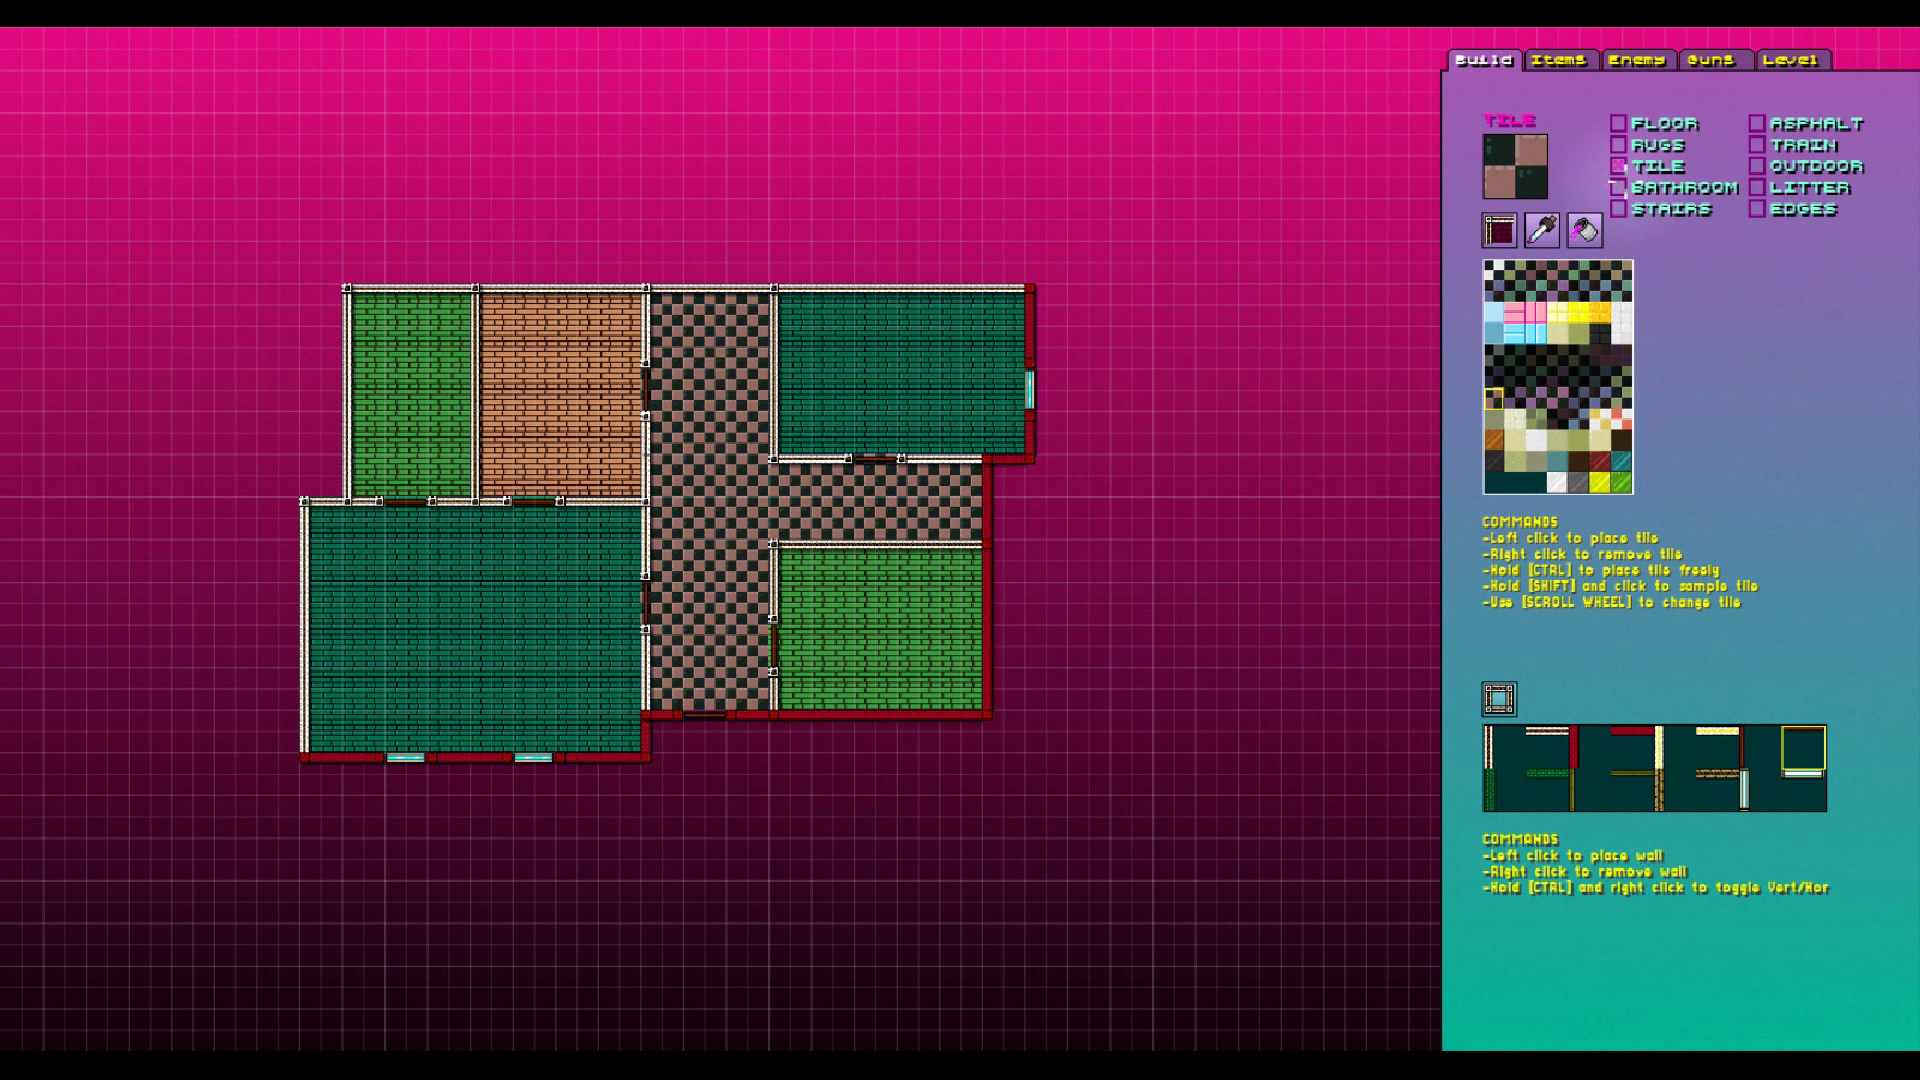 Hotline Miami 2 Level Editor Crafts Carnage With Ease